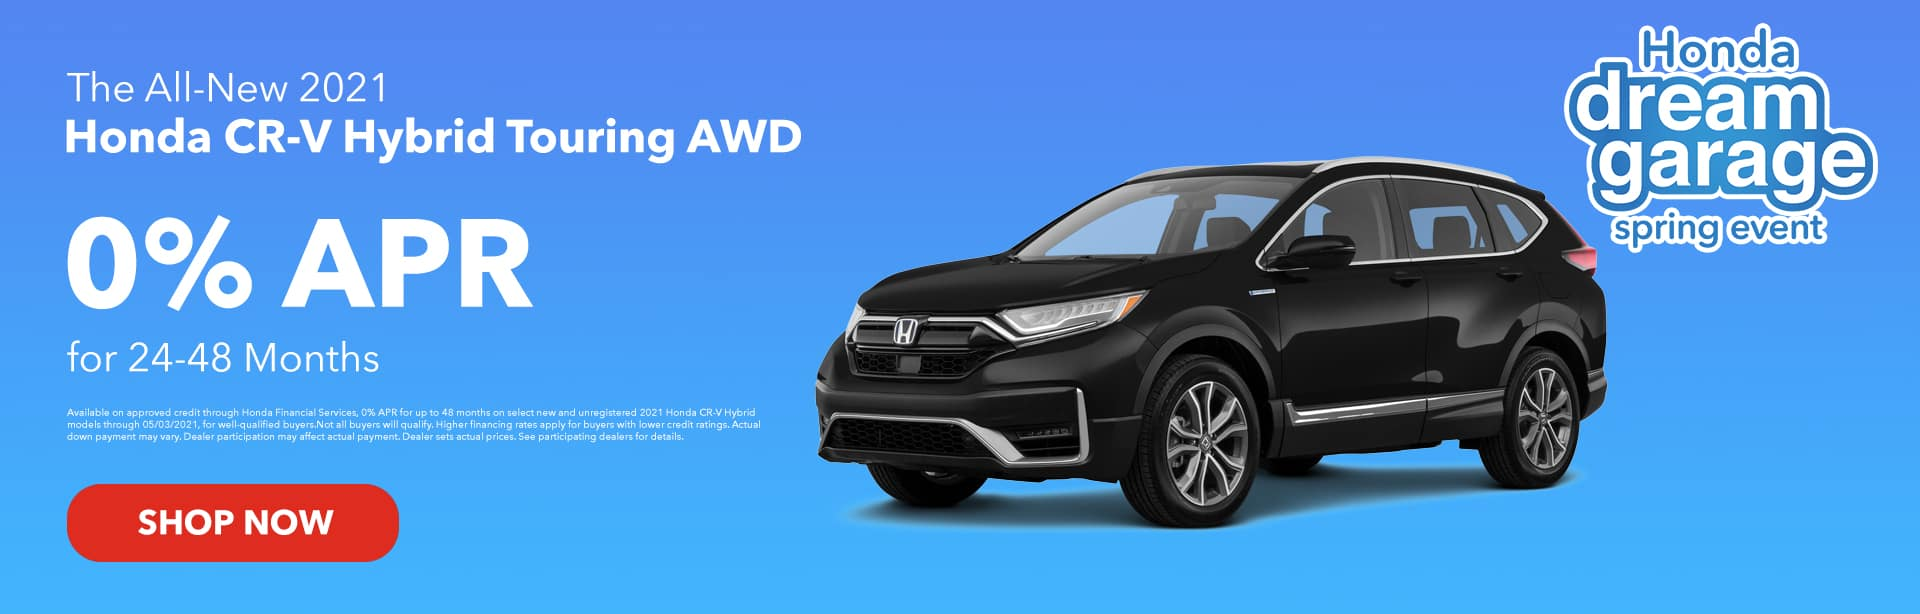 The All-New 2021 Honda CR-V Hybrid Touring AWD 0% APR for 24-48 Months